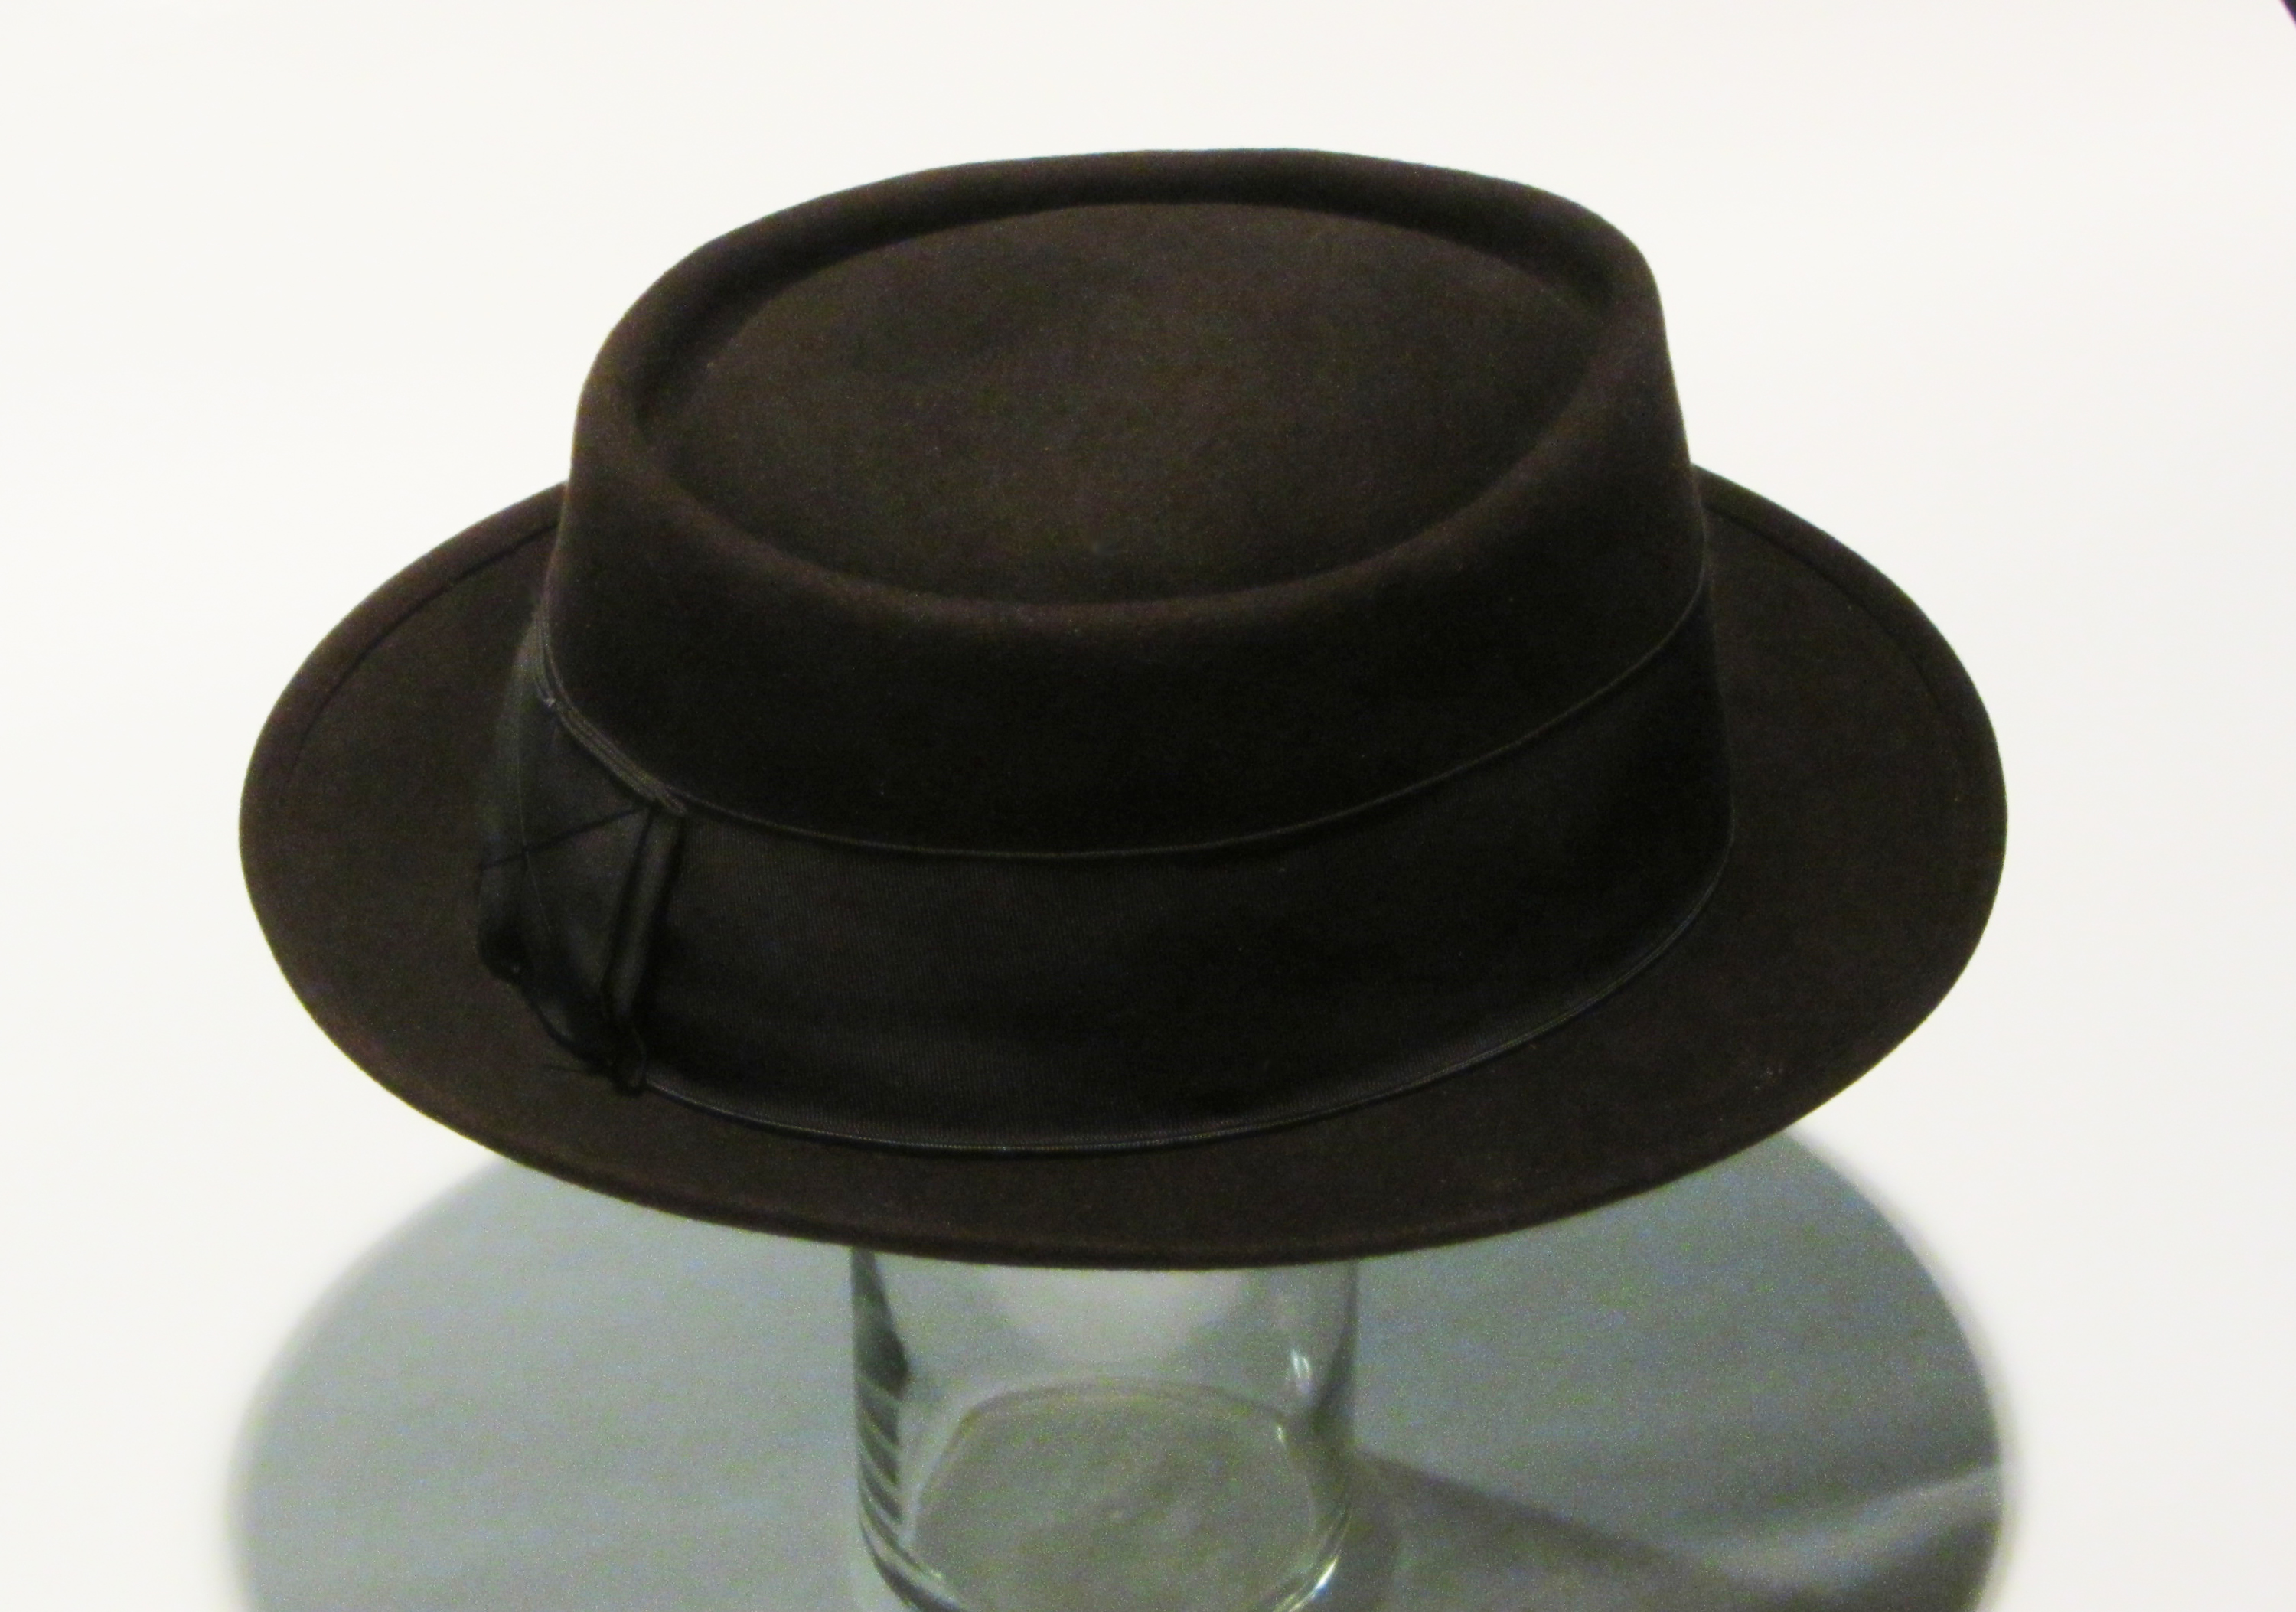 Pork pie hat - Wikipedia 383991afc8e